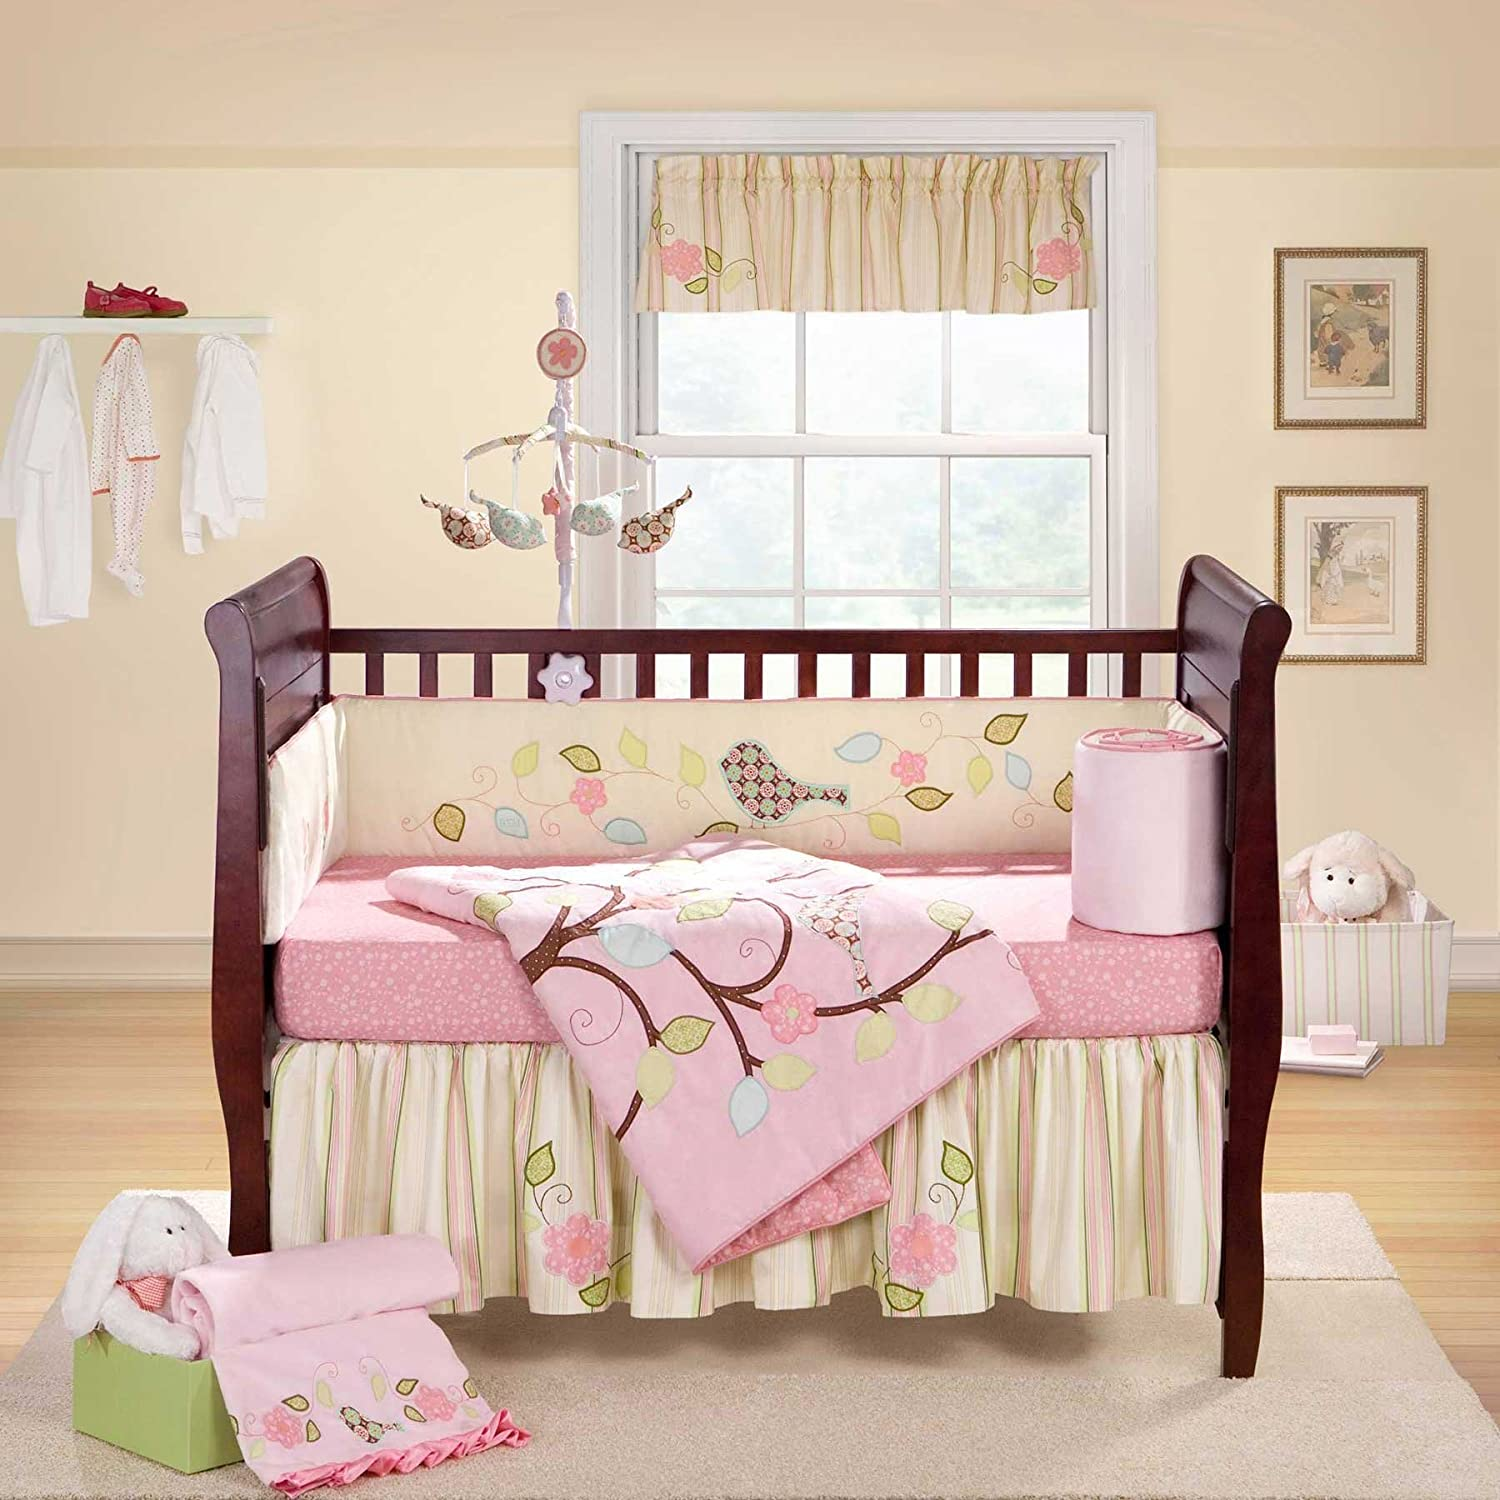 Baby Girl Bedroom 404 Squidoo Page Not Found